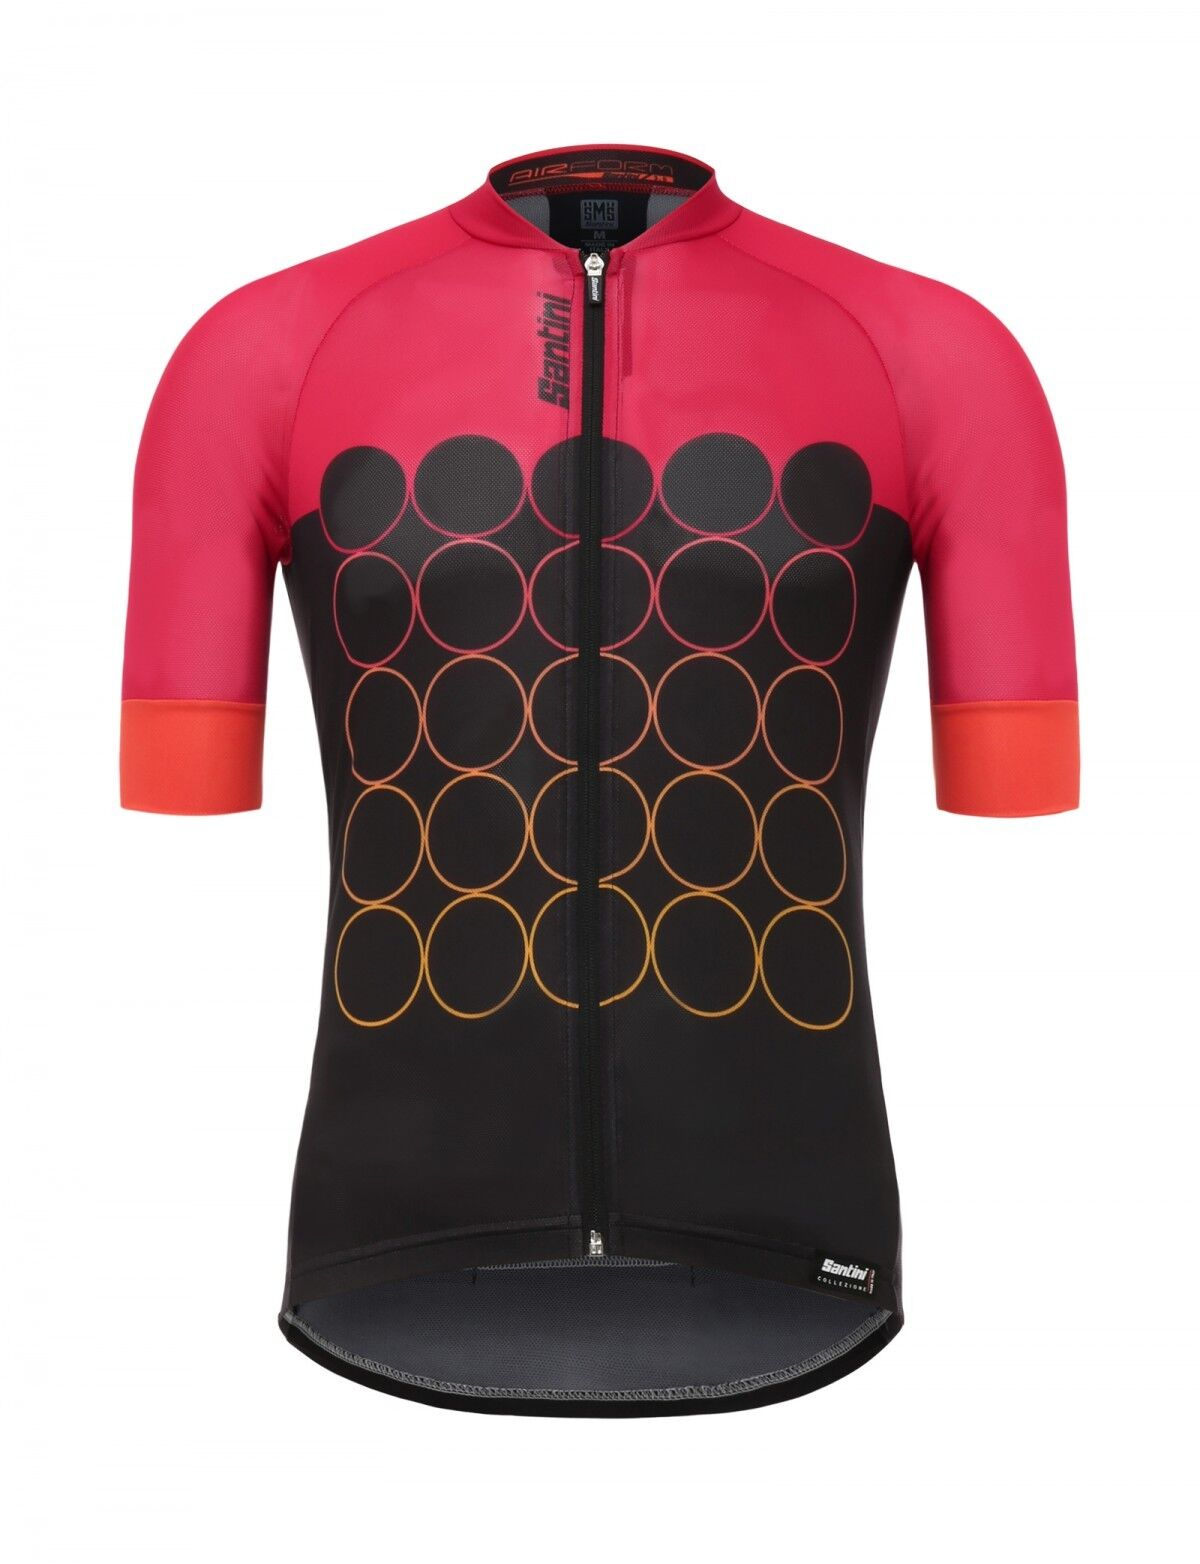 AIRFORM 3.0 Cycling Jersey in rosso Made in  by Santini